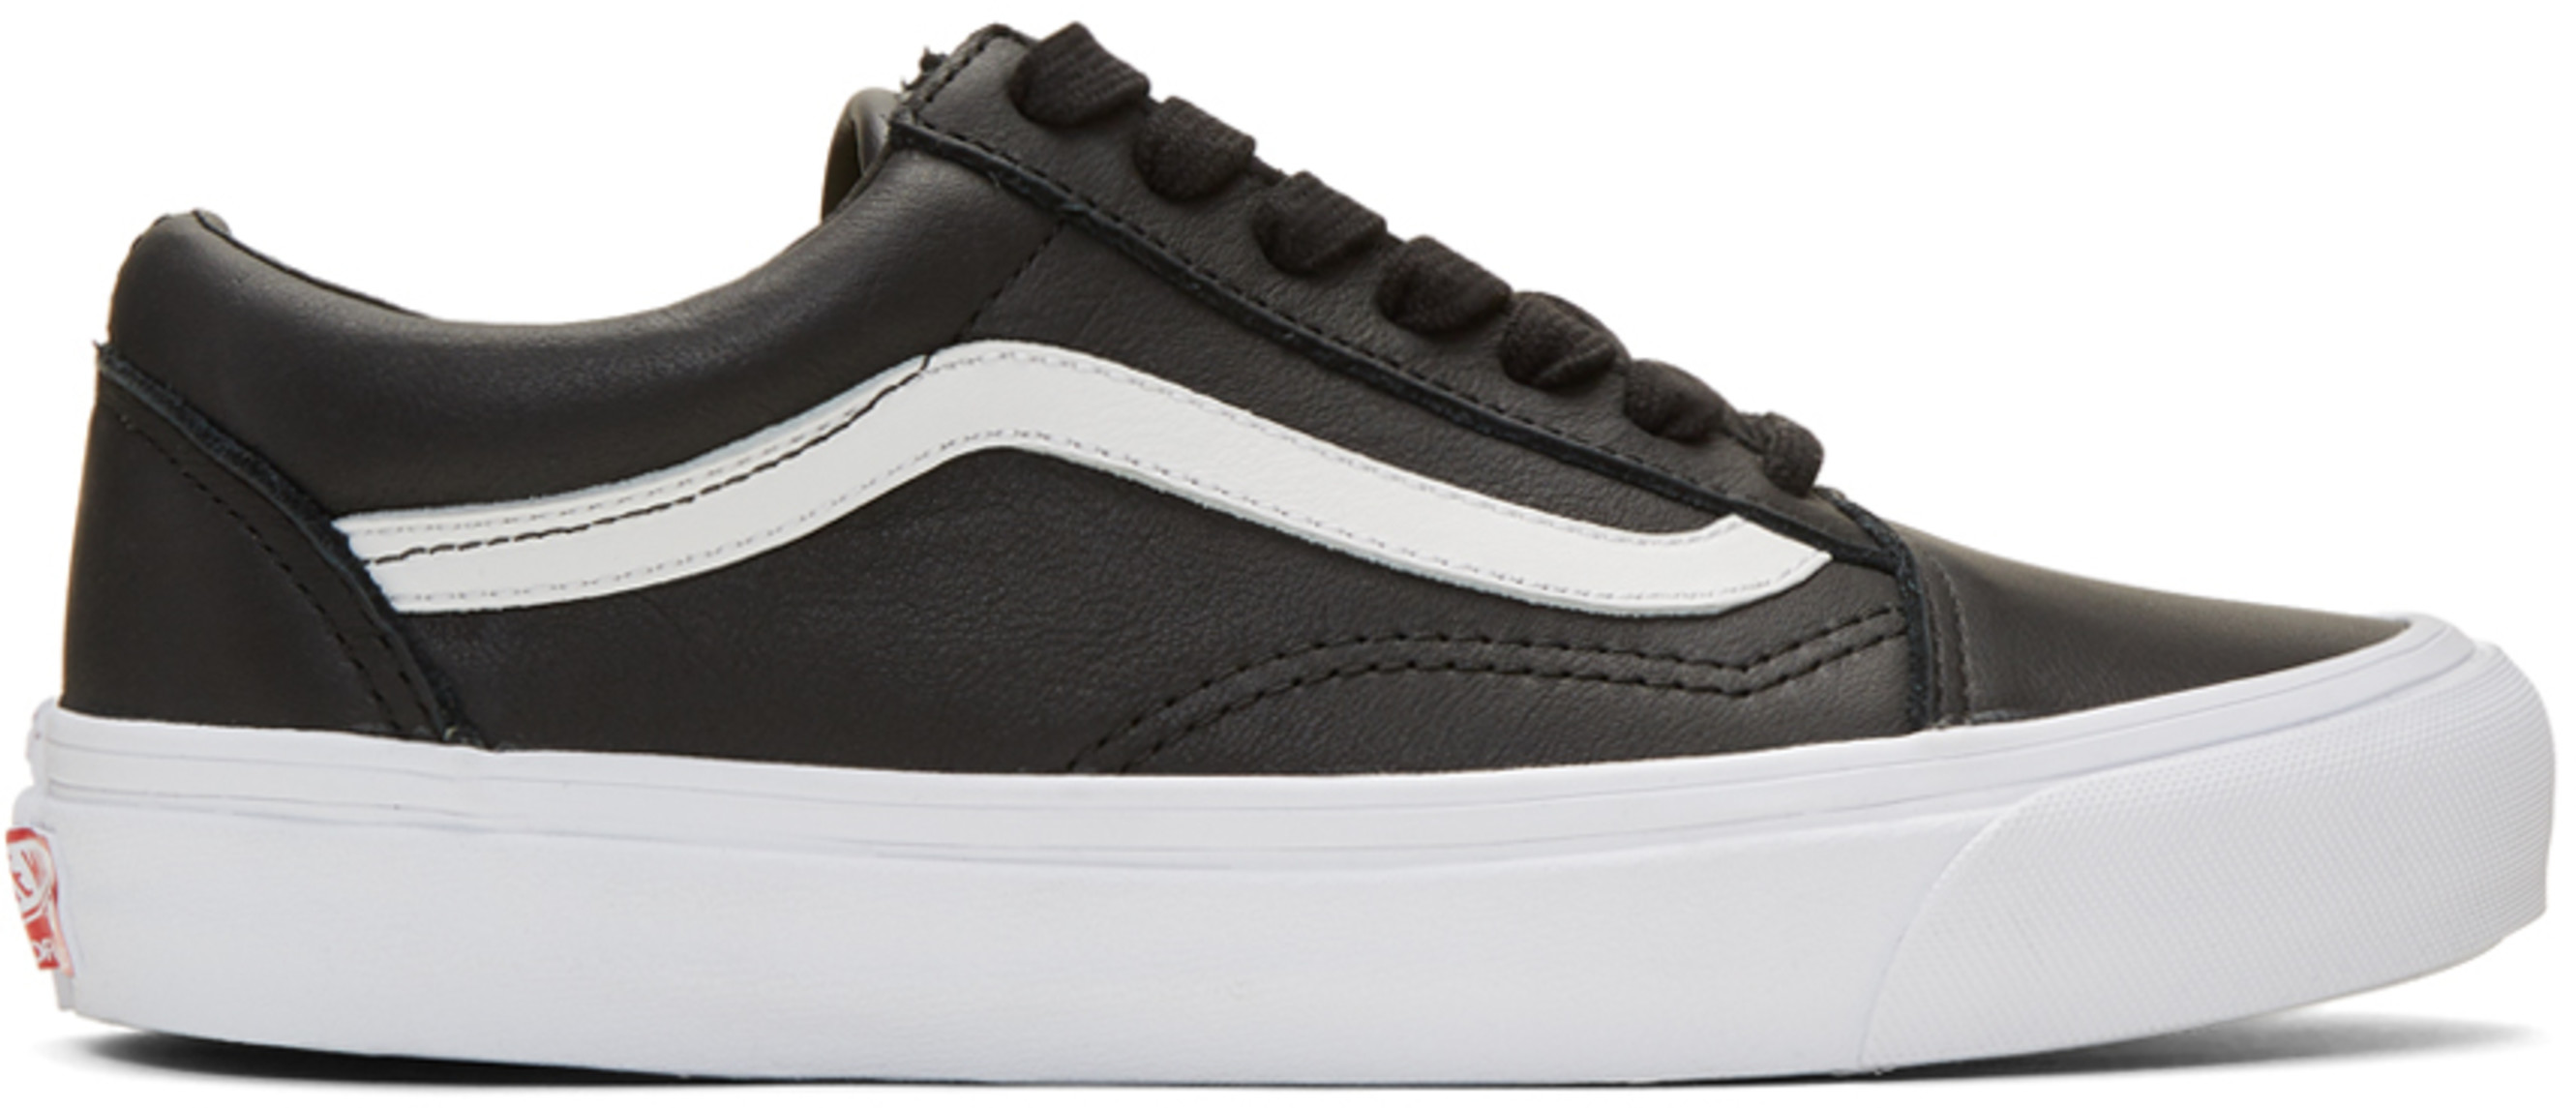 cdb562dc48 Vans for Men SS19 Collection